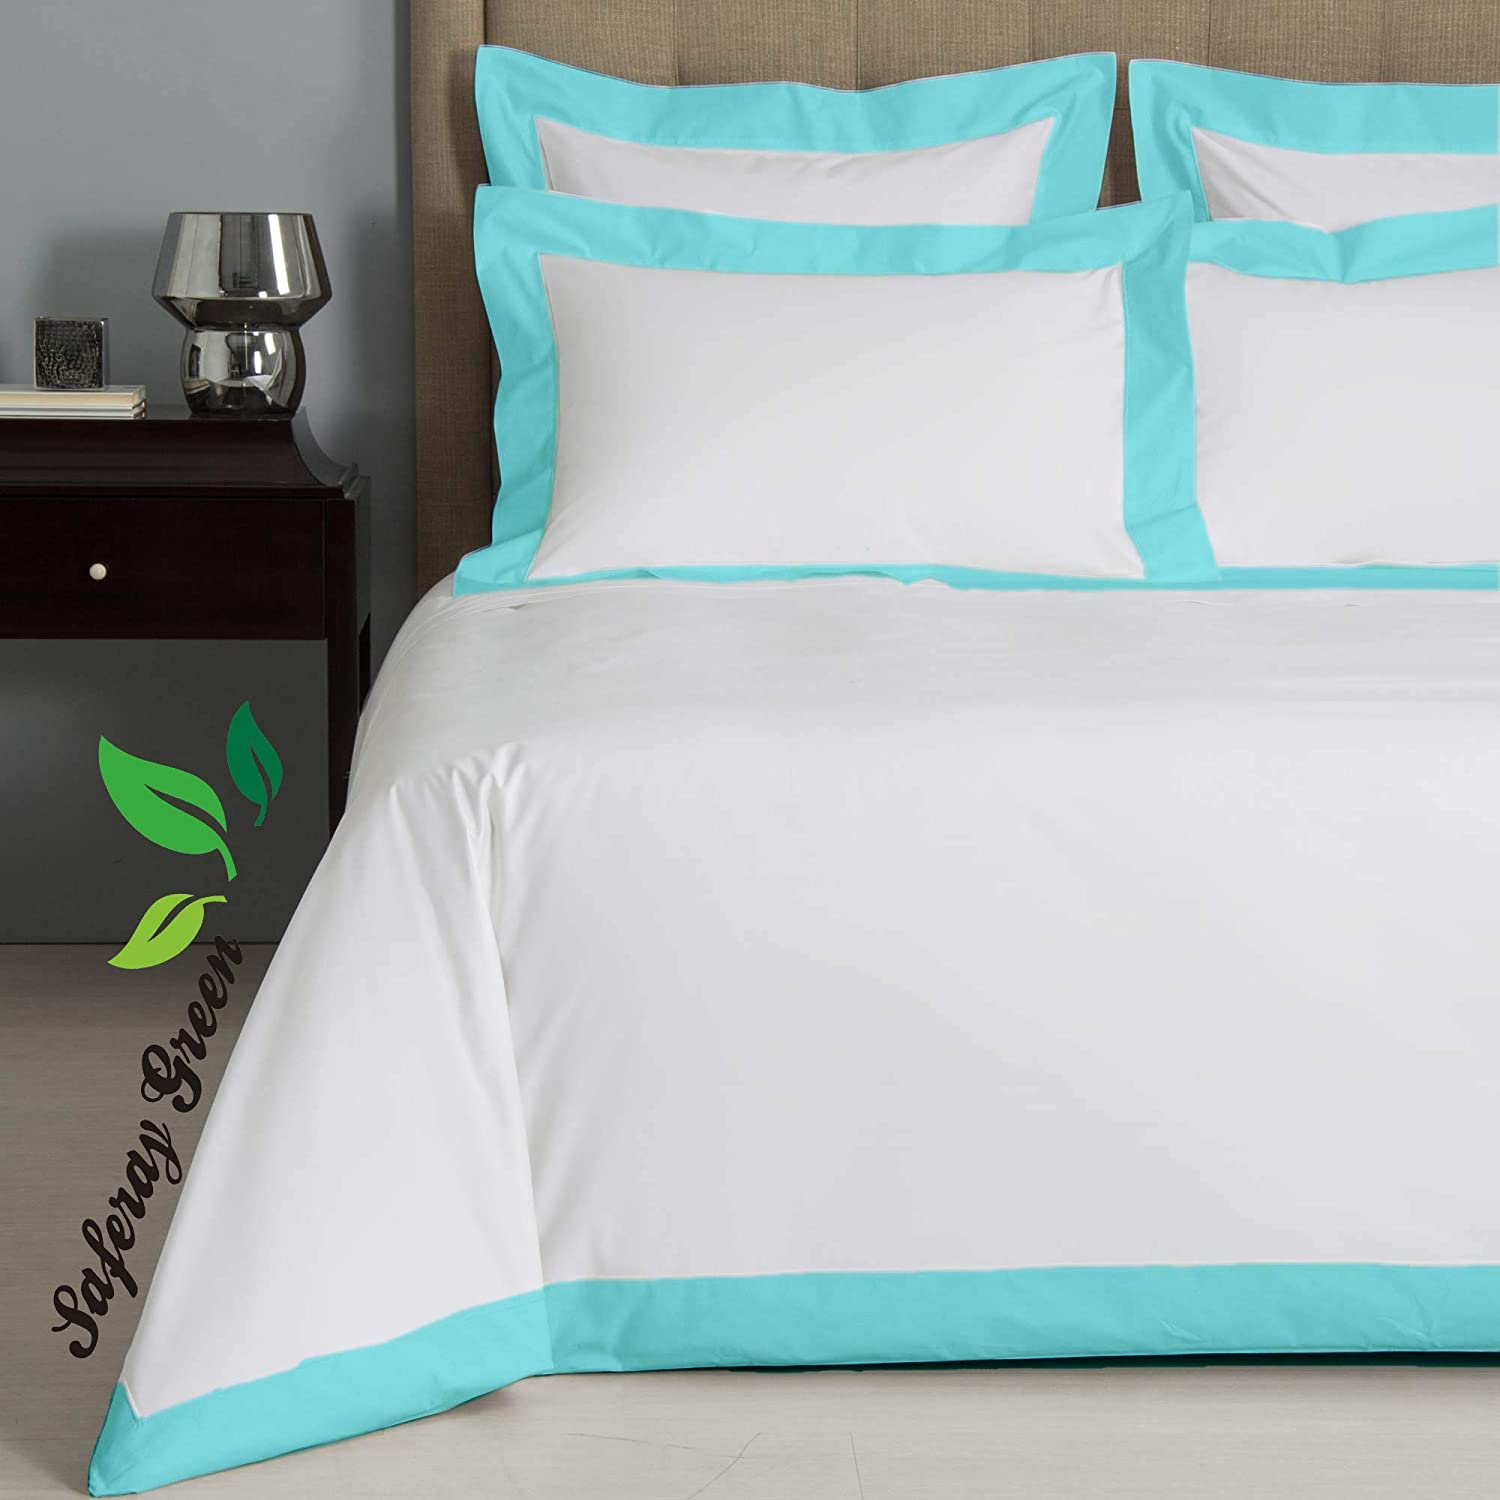 Hotel Luxury 3pc Two Tone Duvet Cover Set-850 Thread Count 100/% Egyptian Cotton Premium Bedding Collection Twin Size 68 x 86 Inches Machine Washable White /& Aqua